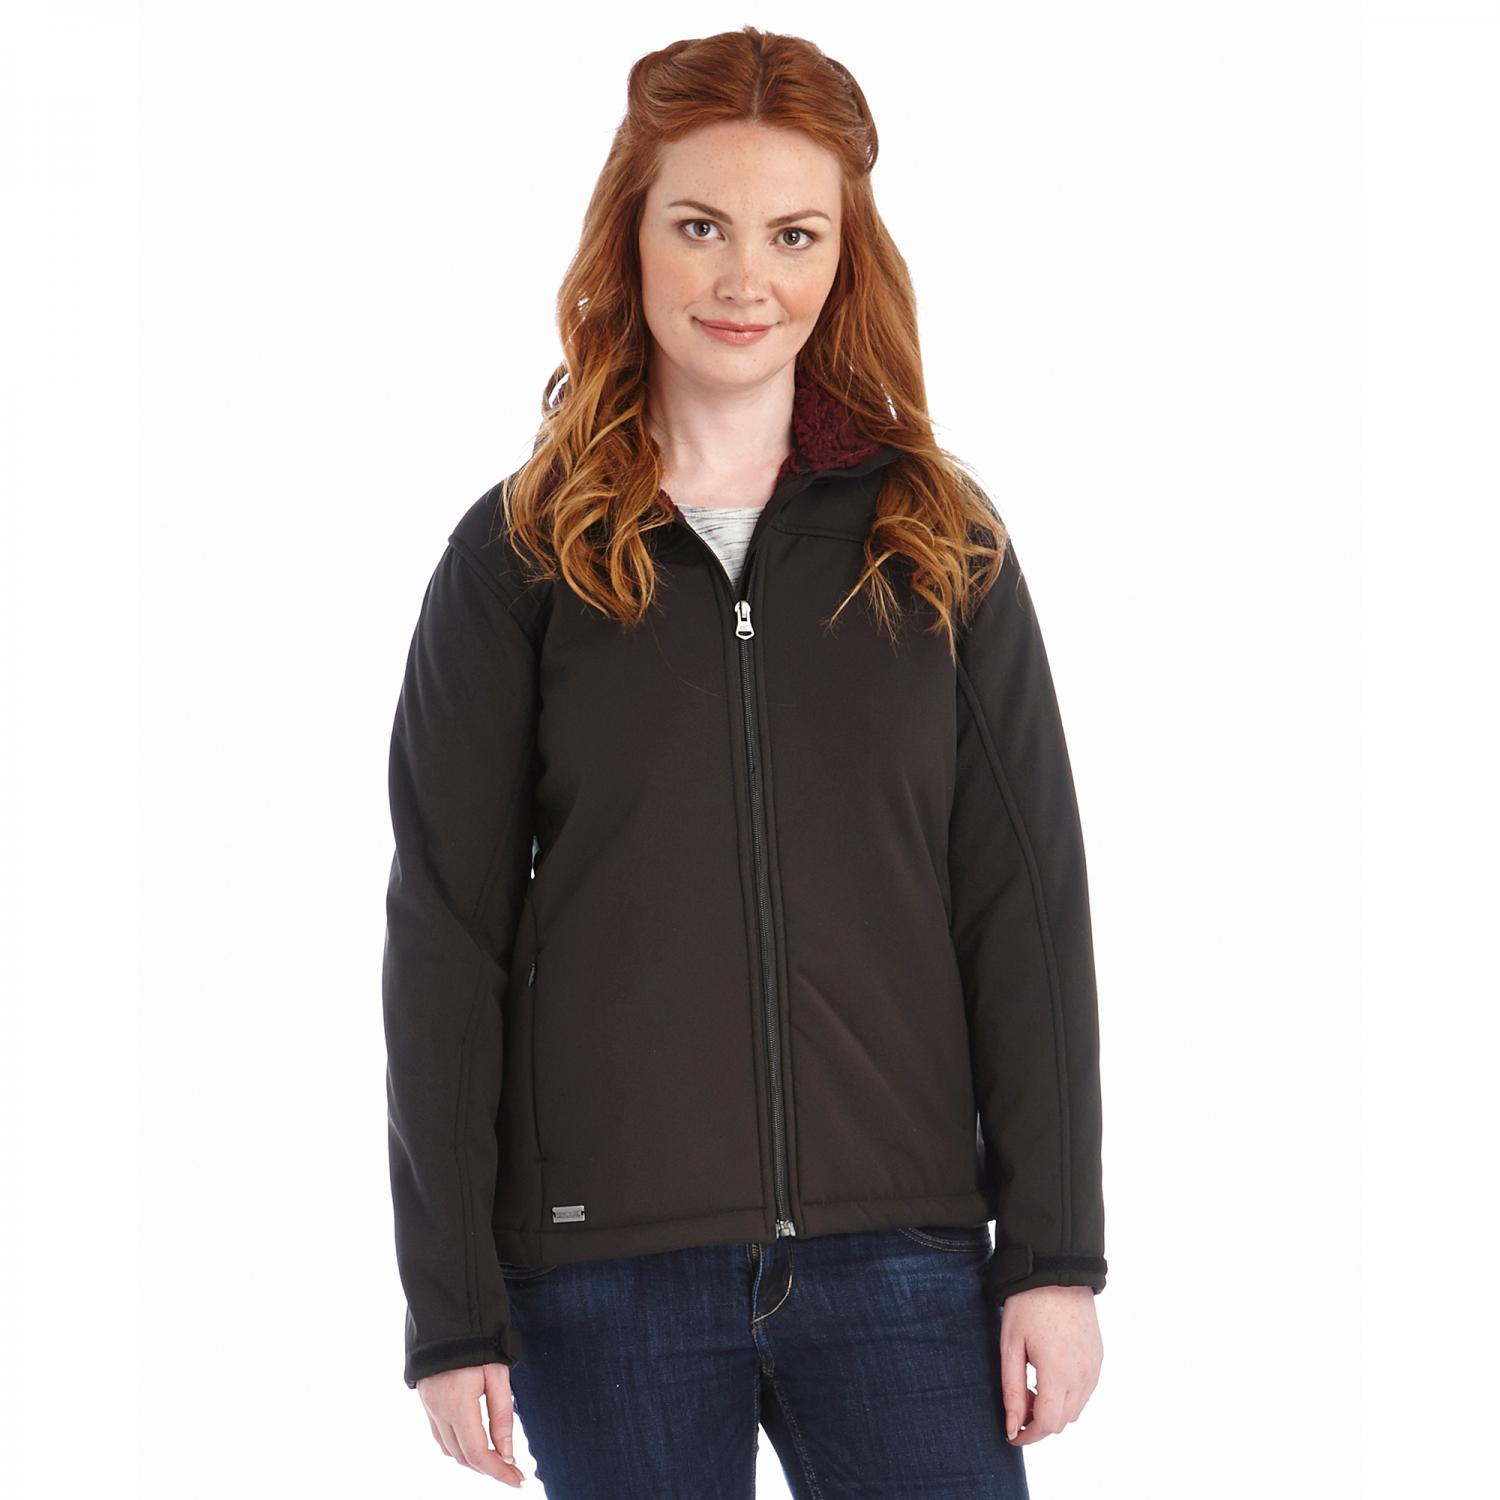 Tulsie Softshell Jacket Black